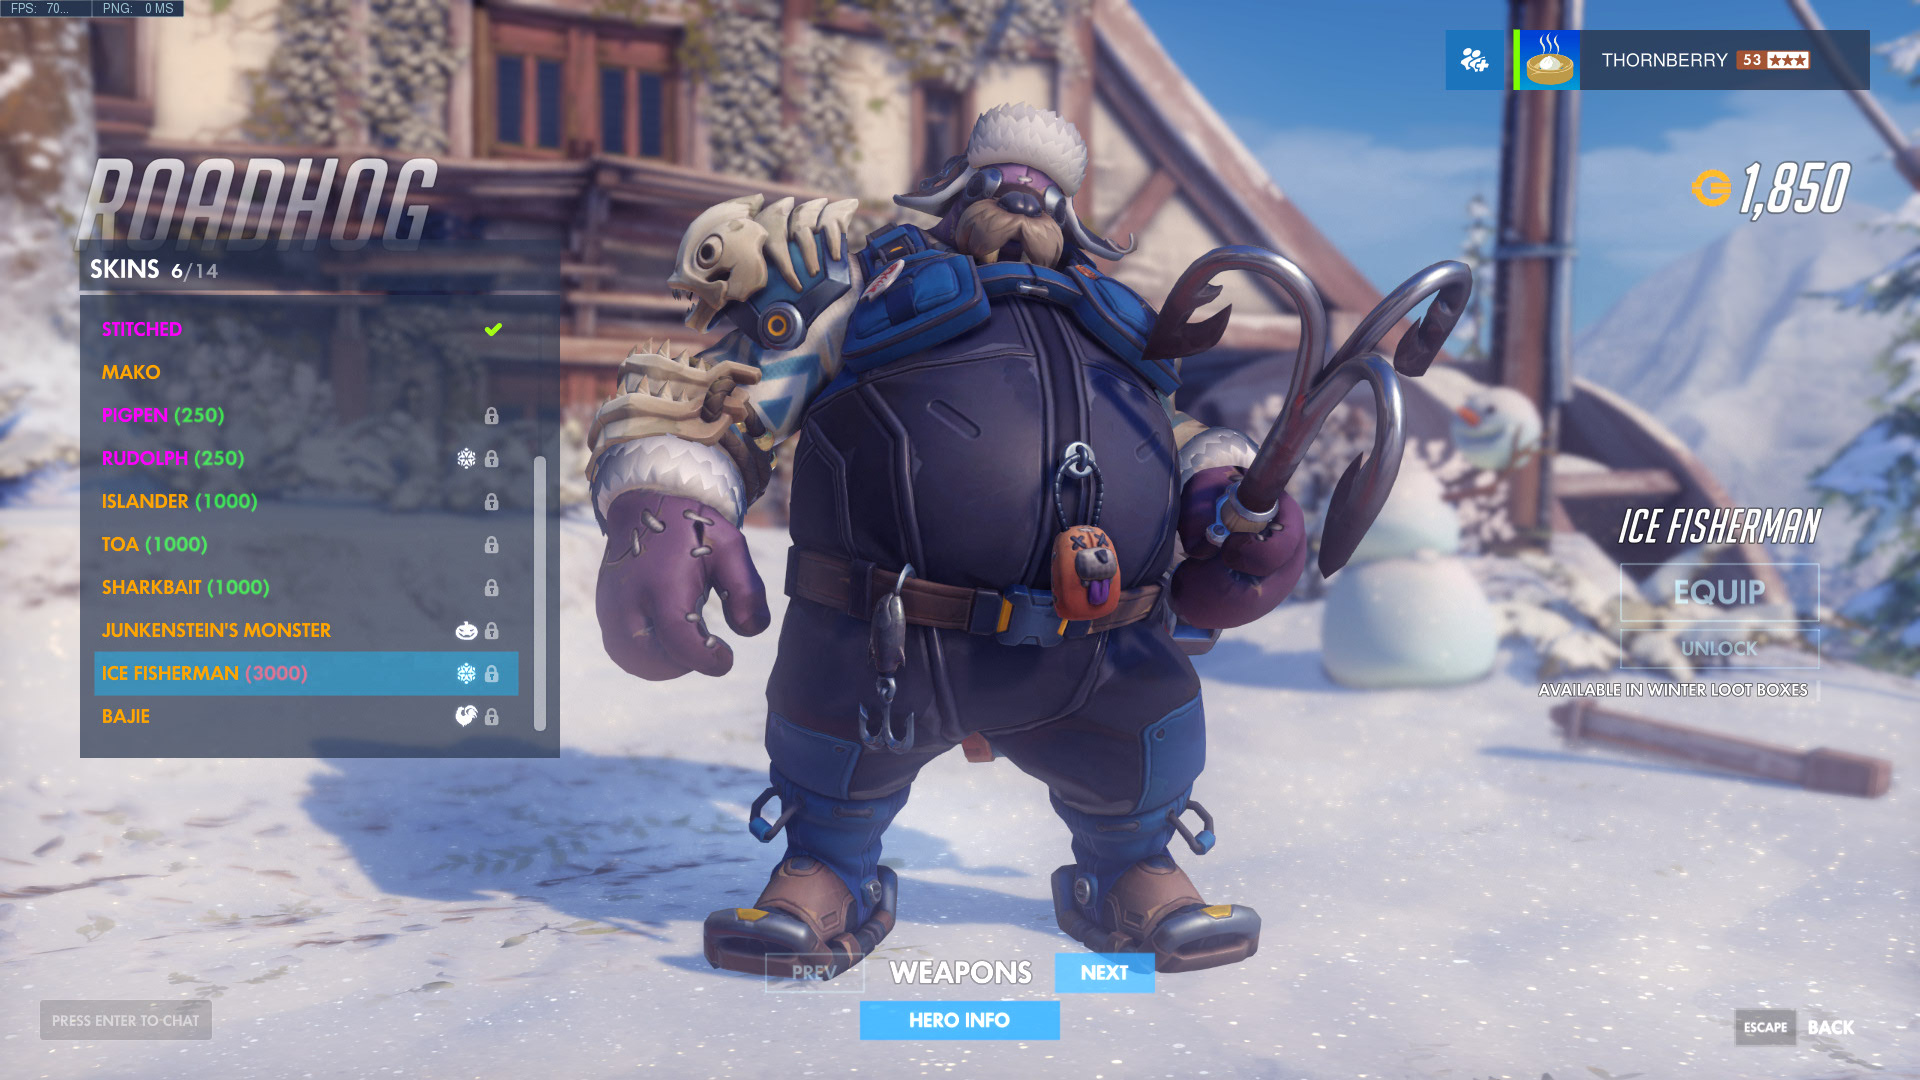 Overwatch Christmas 2019 Skins.Overwatch Winter Wonderland 2017 Skins All The Legendary